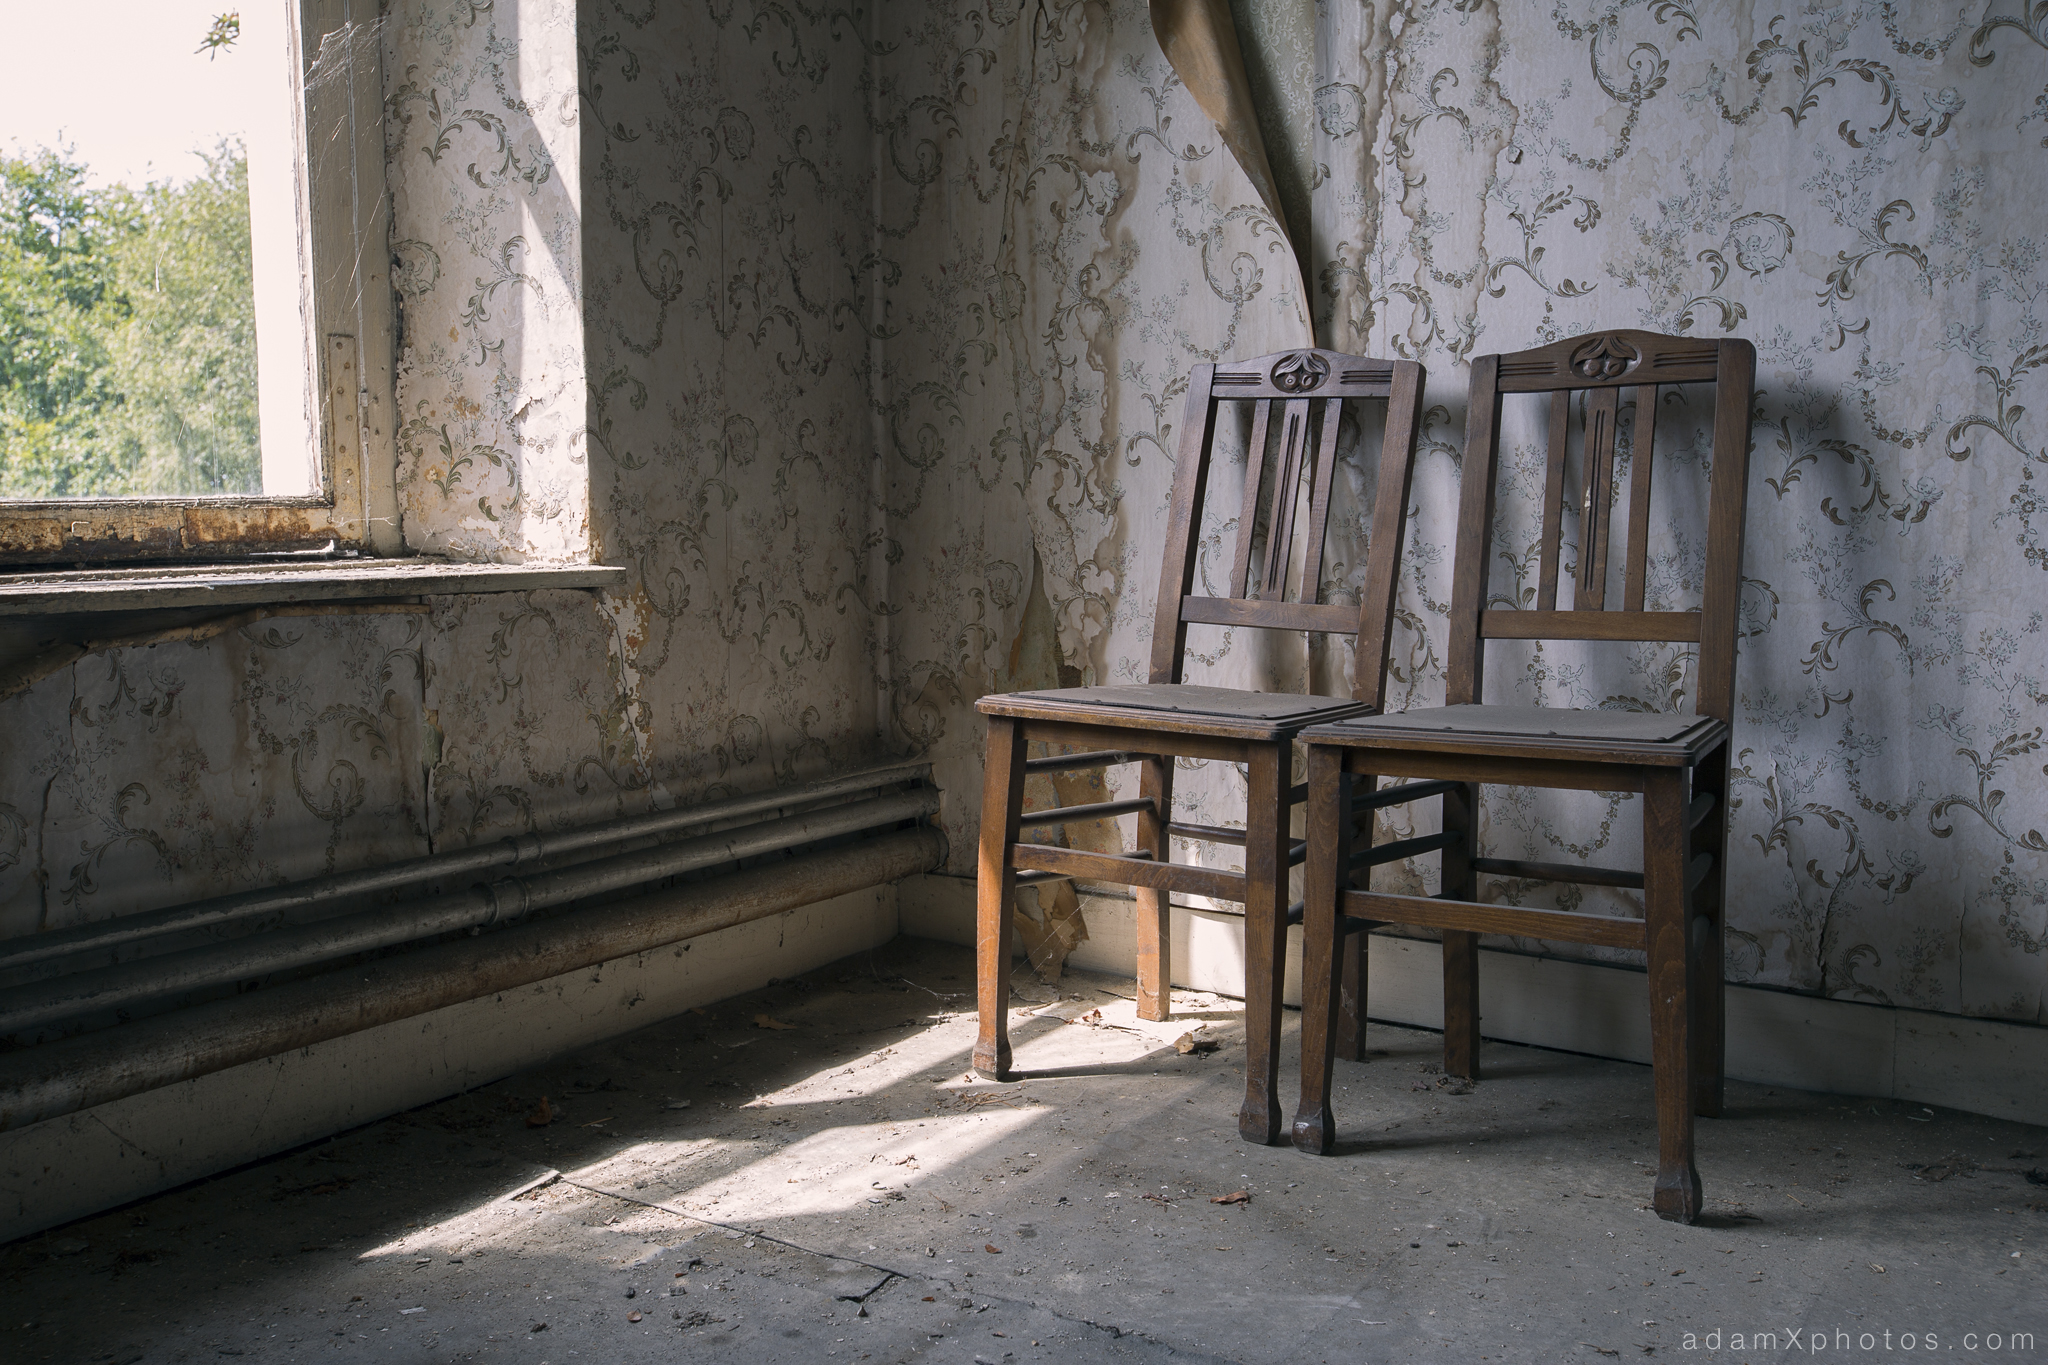 Adam X Chateau de la Chapelle urbex urban exploration belgium abandoned chairs still life